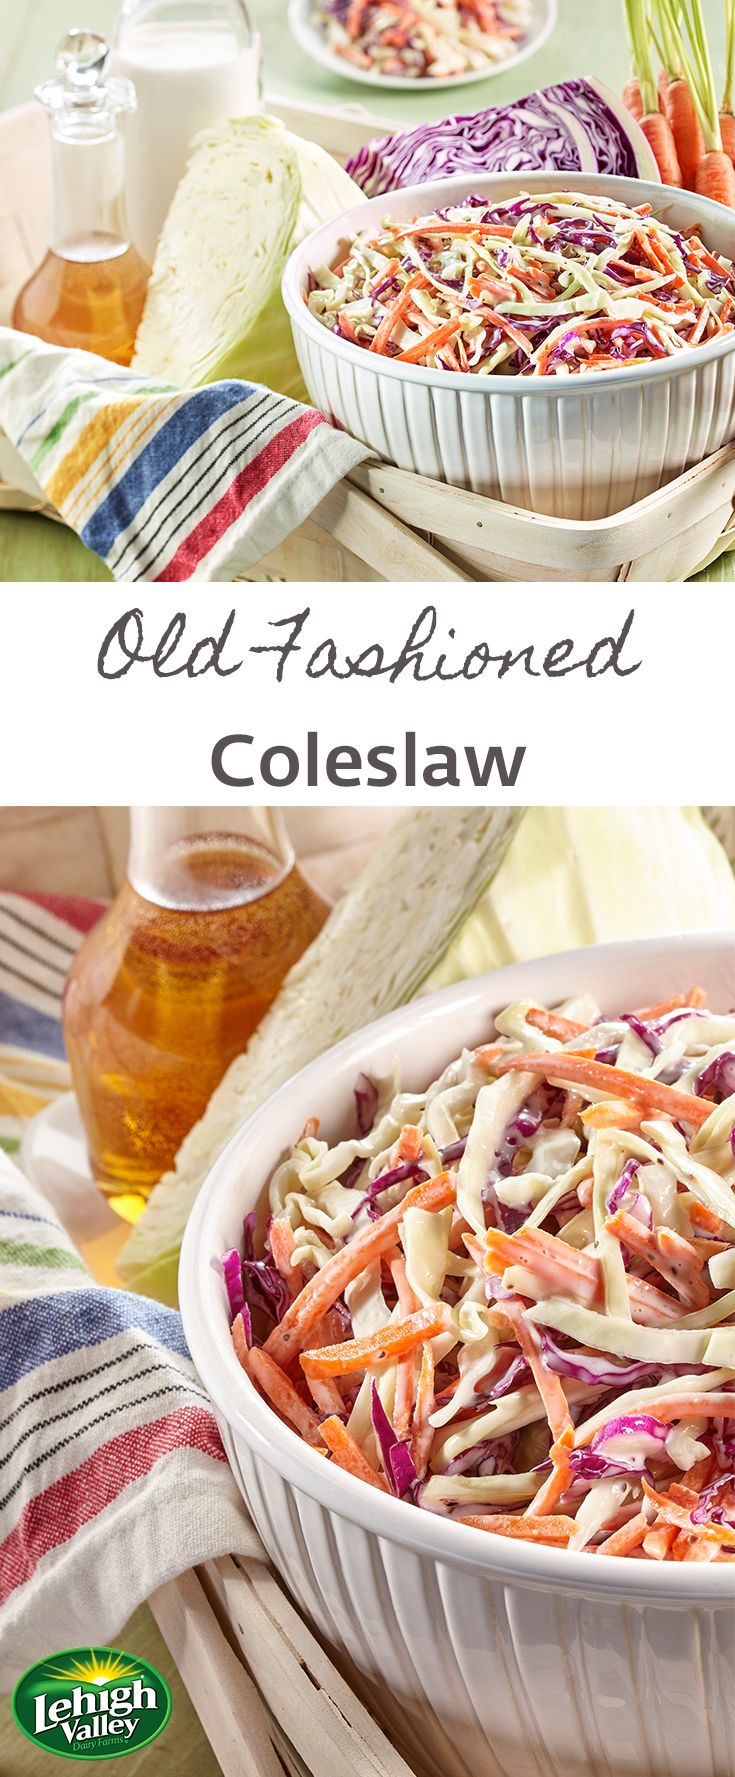 A colorful classic, this coleslaw is made to share! The perfect balance of tangy and creamy, this coleslaw completes any summer barbeque.